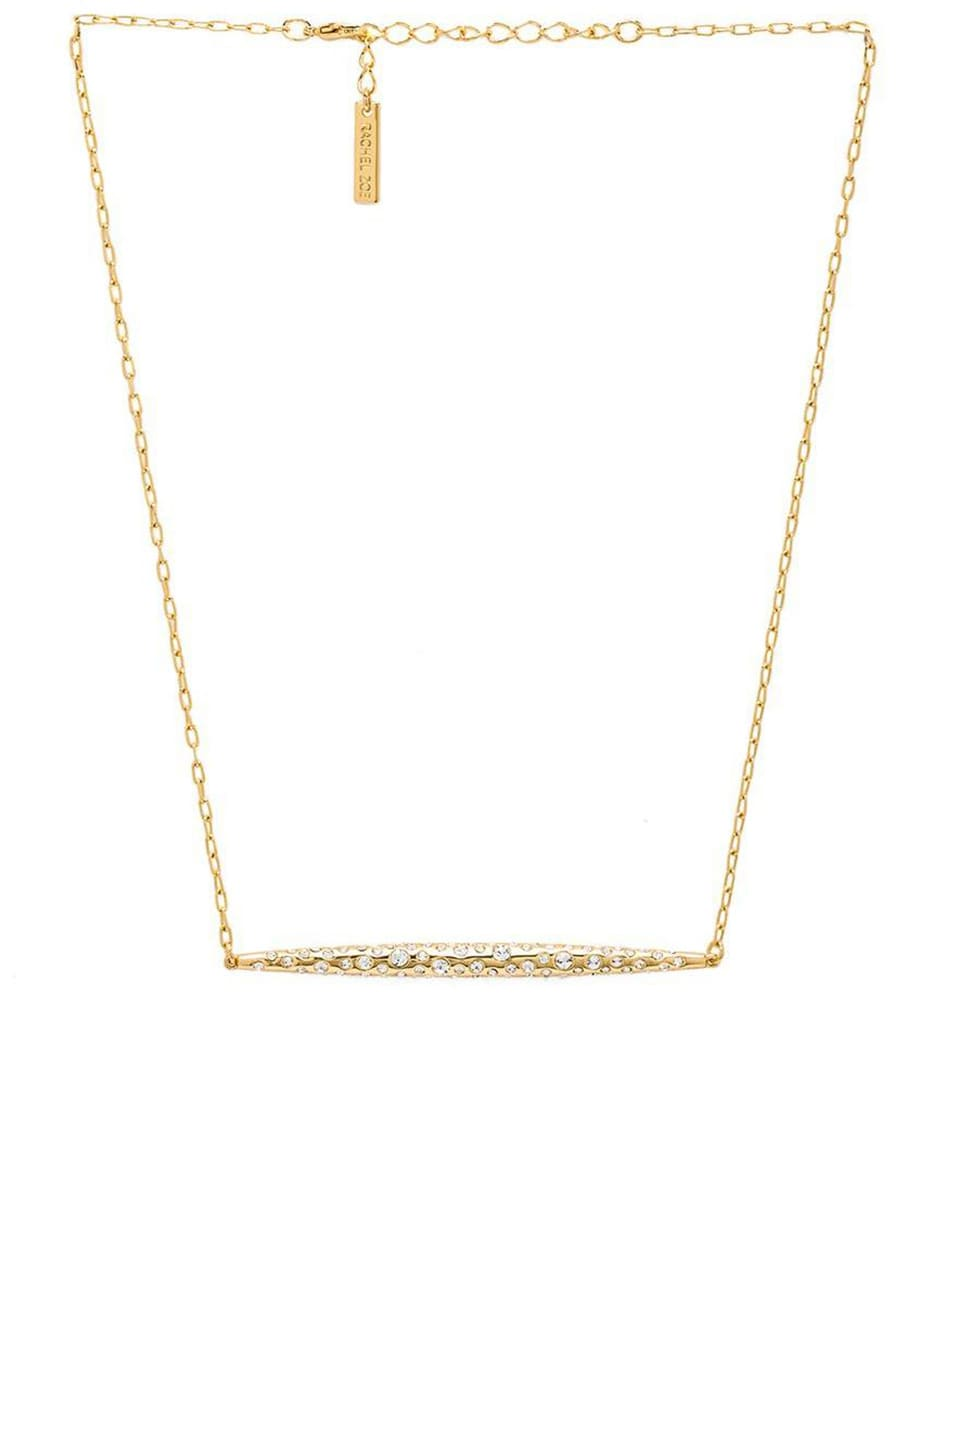 RACHEL ZOE Large Quill Pave Bar Necklace in Gold & Crystal